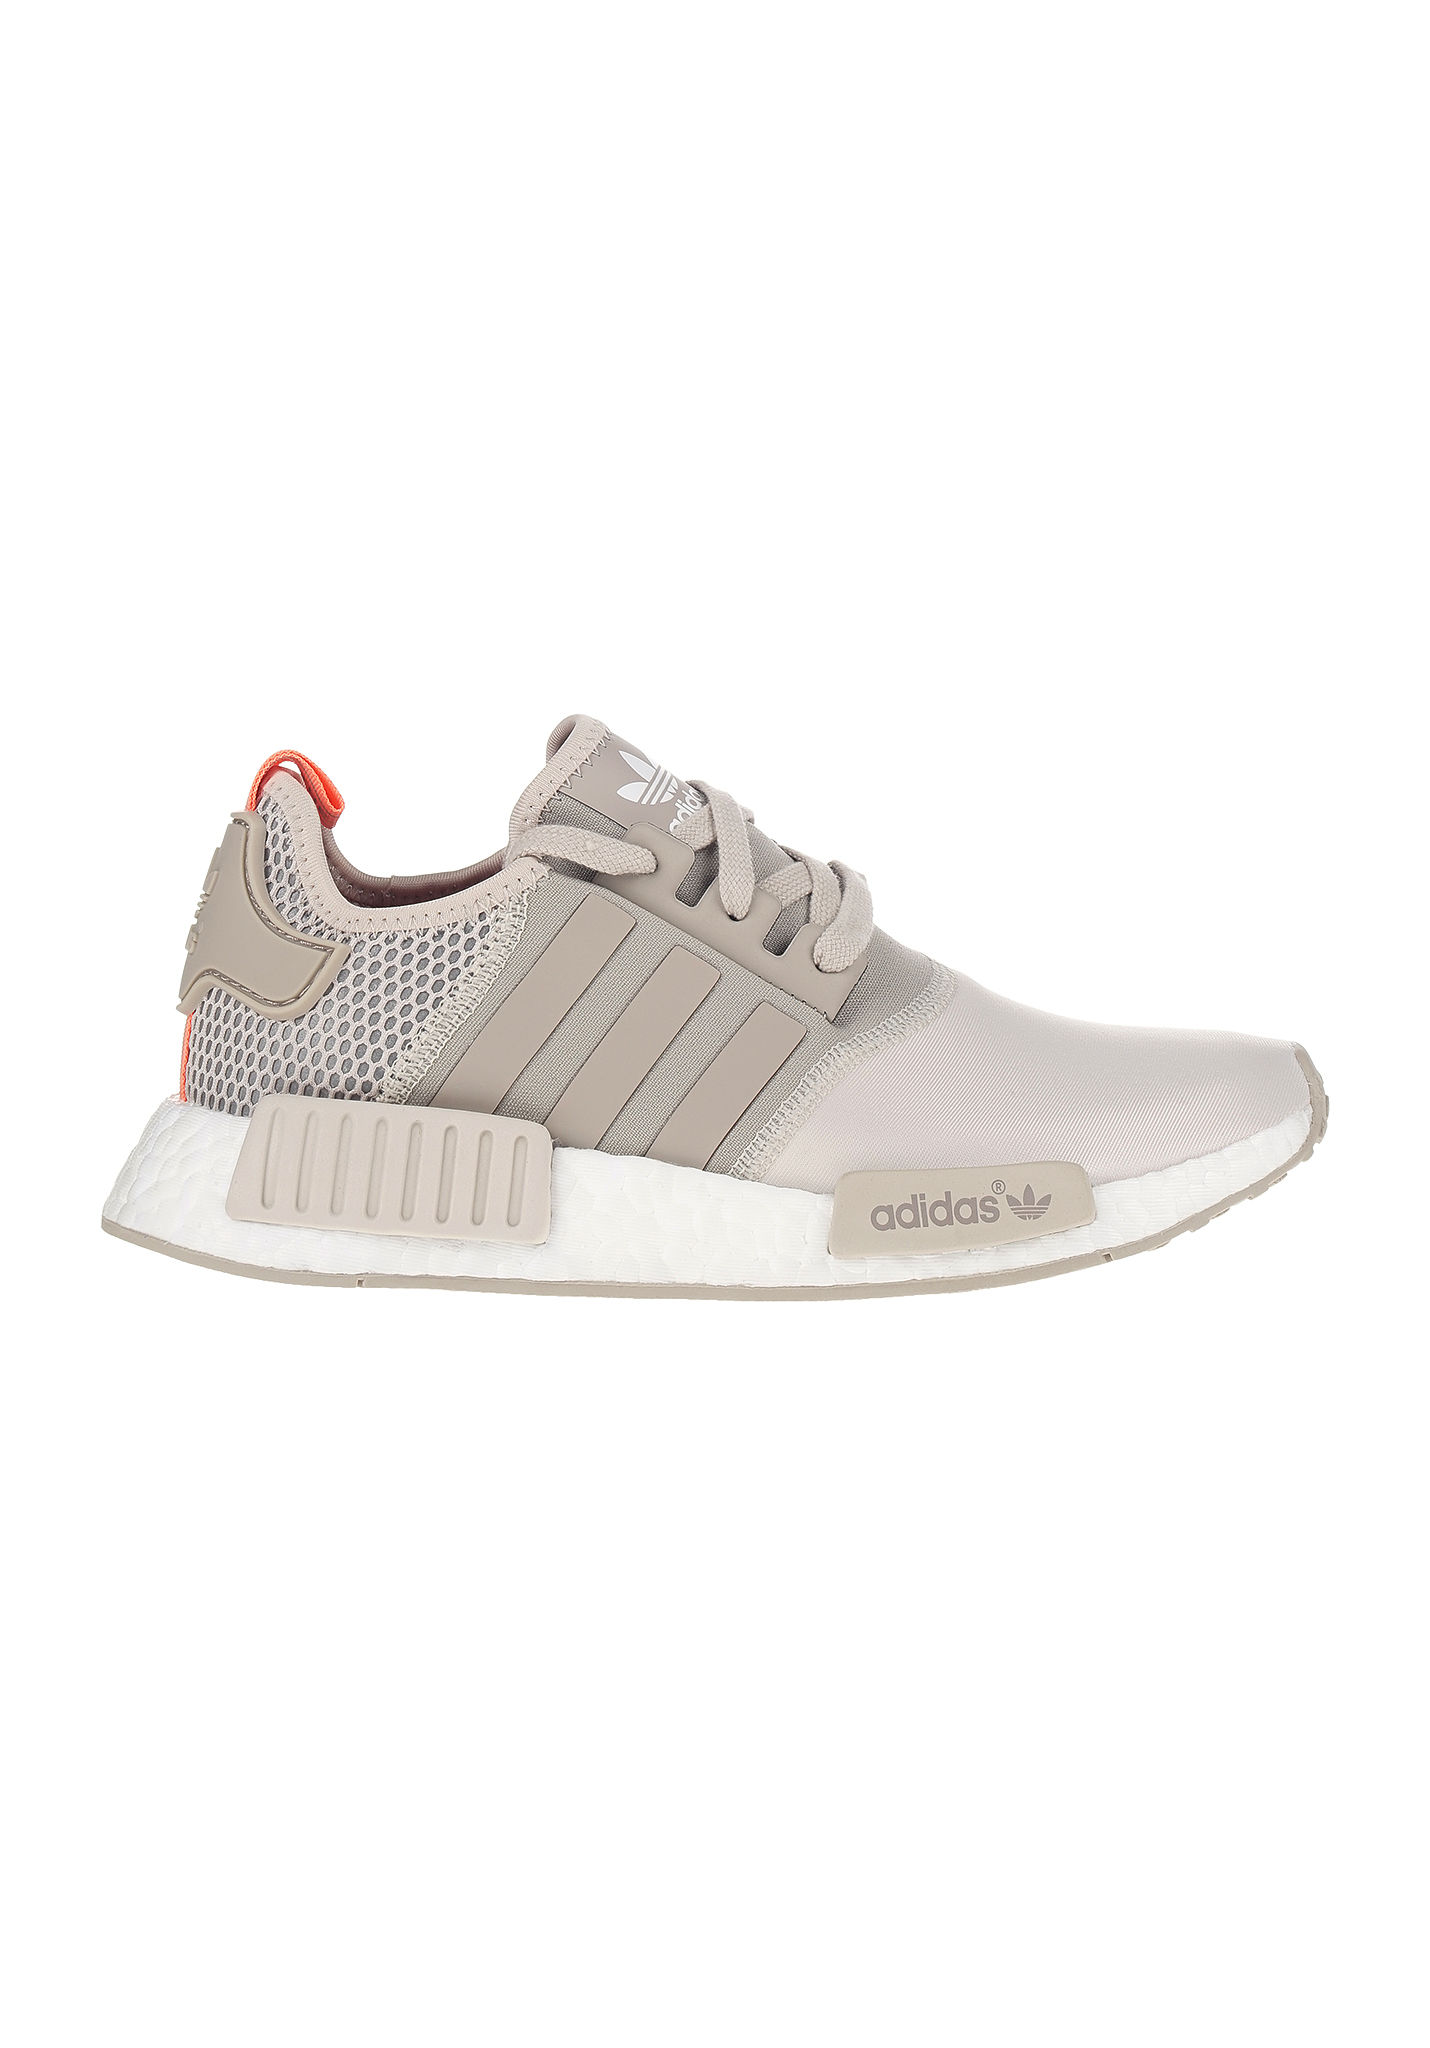 adidas nmd dames roze